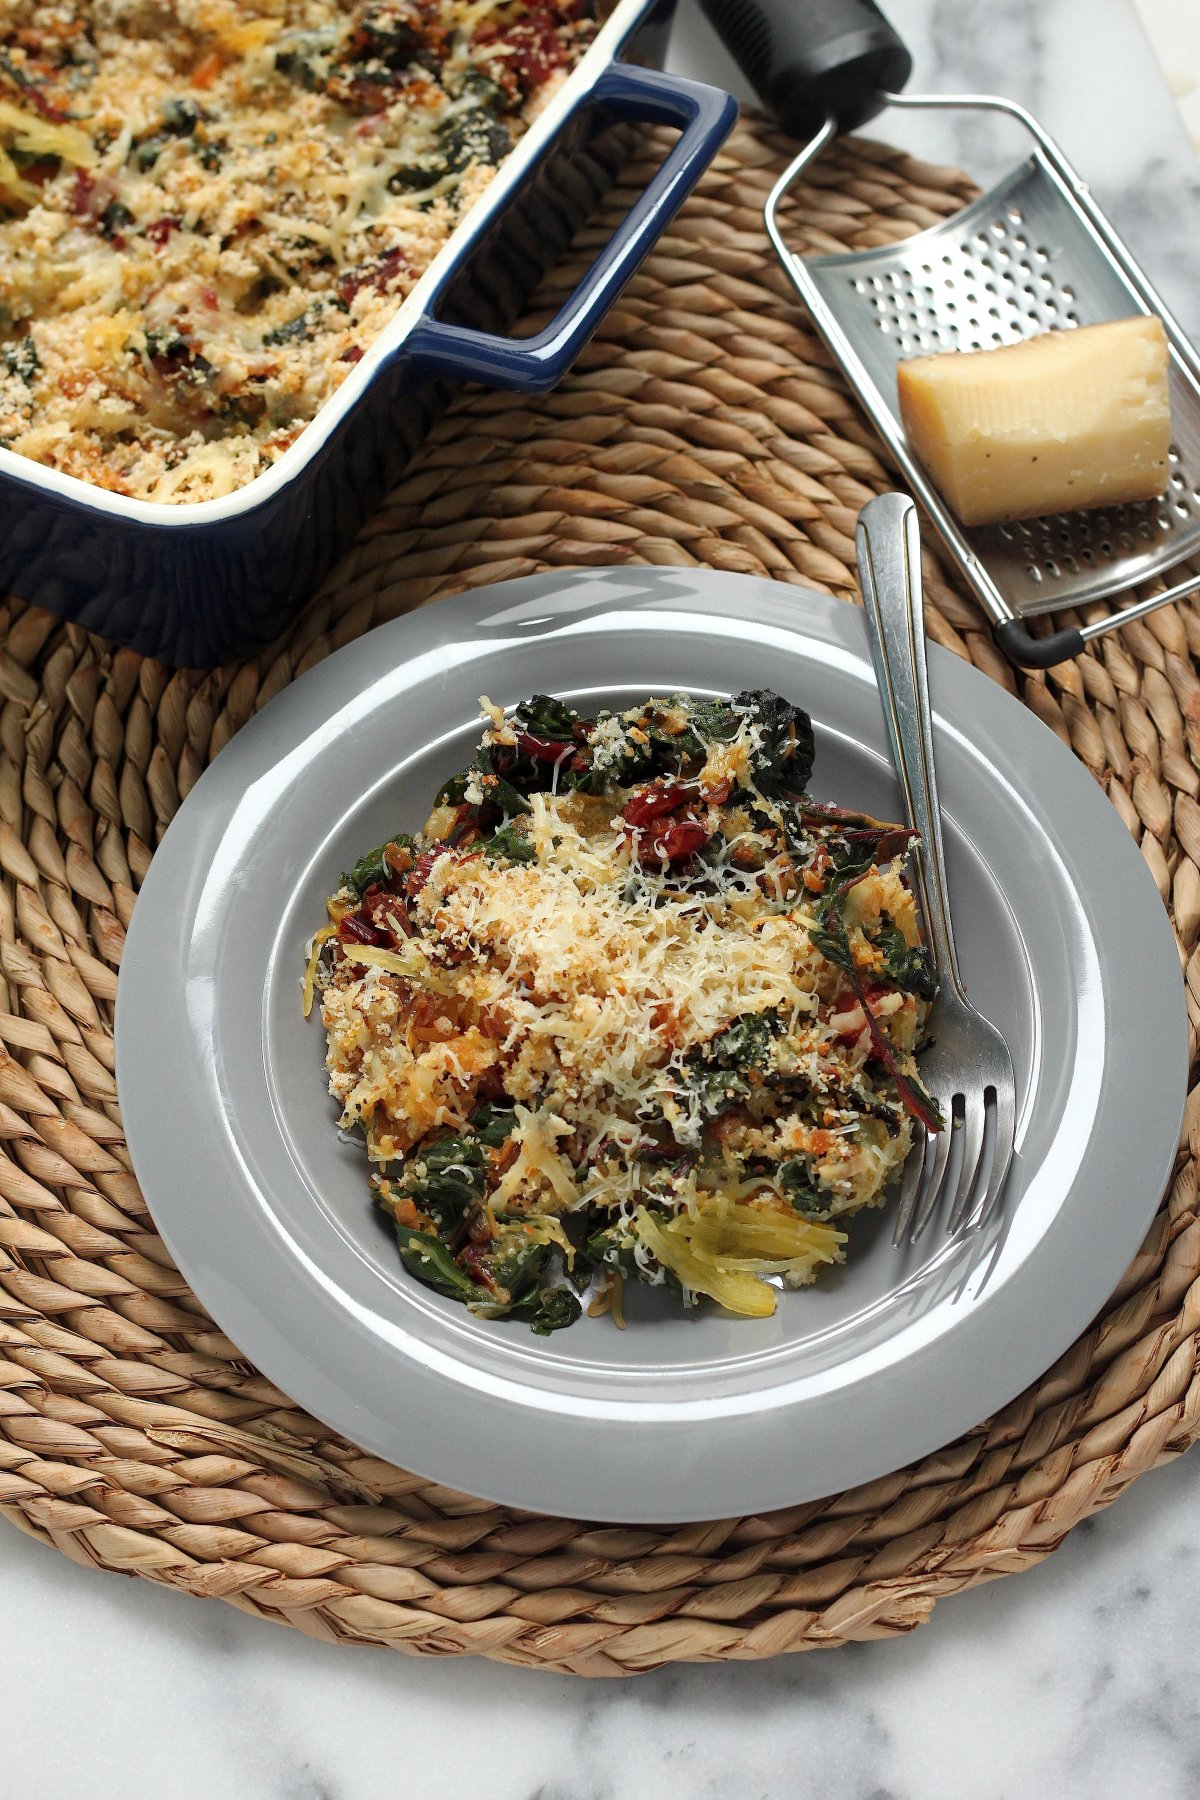 Lightened Up) Swiss Chard & Spaghetti Squash Gratin - Baker by Nature